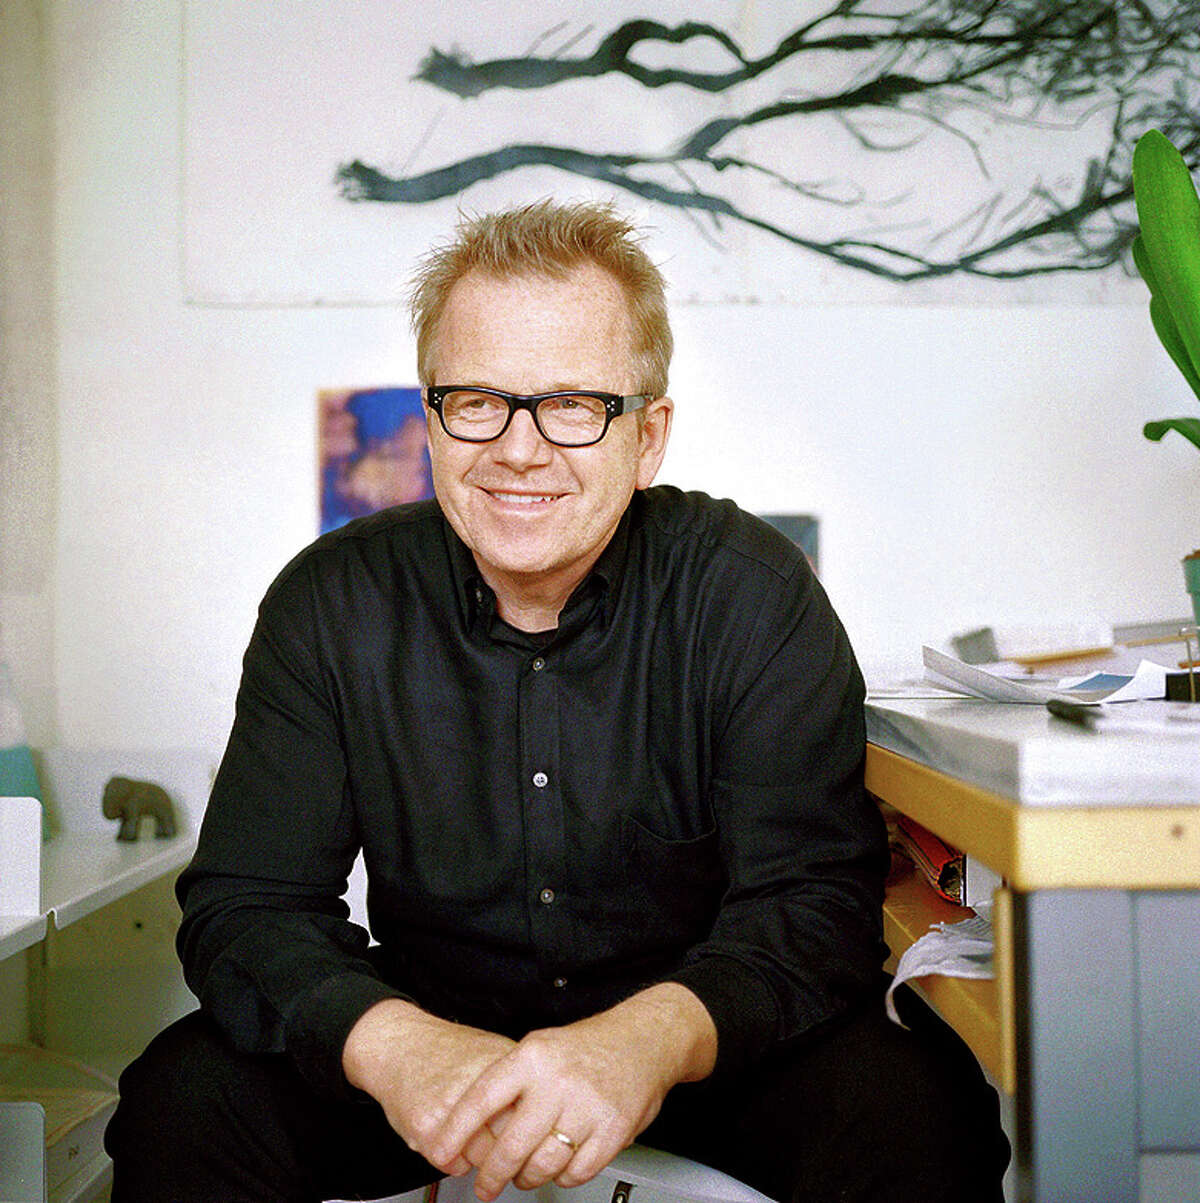 Landscape architect Michael Van Valkenburgh will give the Garden Club of Houston's biennial Nancy Thomas Horticulture Lecture Feb. 21 on the topic,